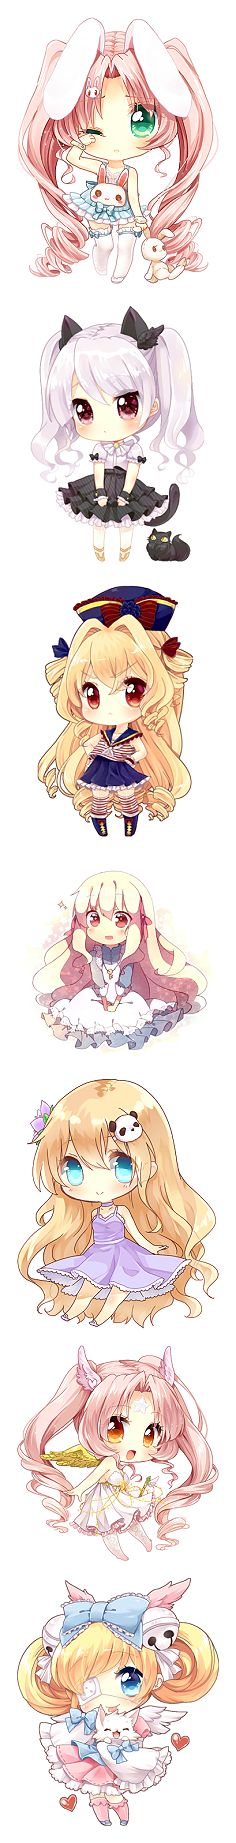 cute little chibi animal girls